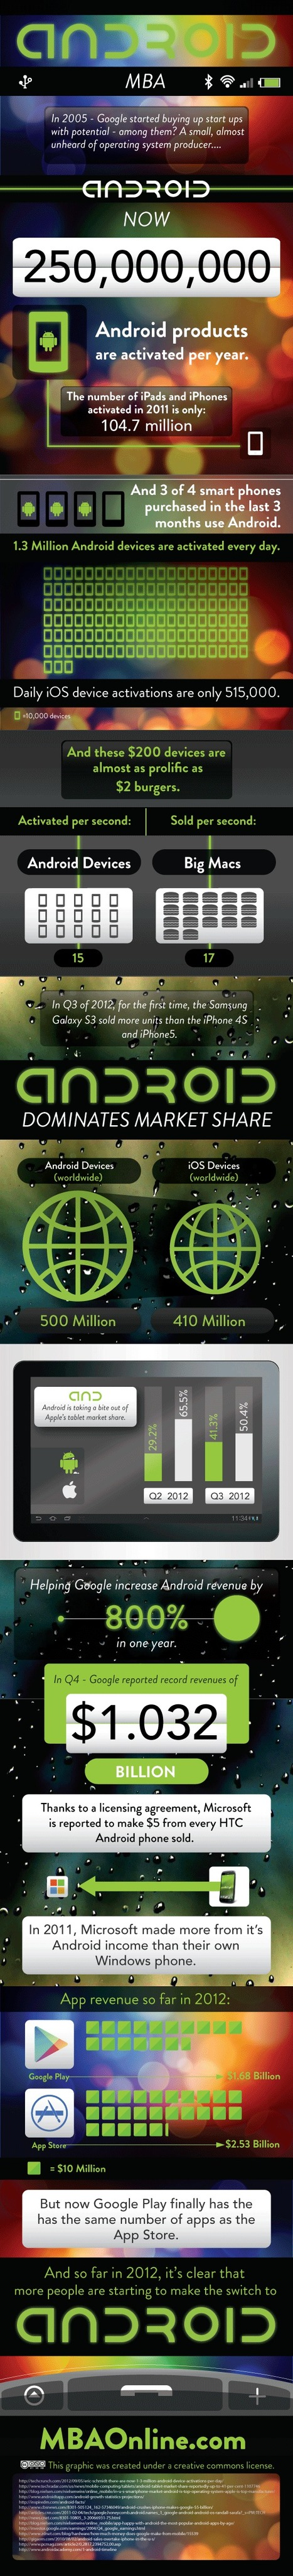 Android Infographic   Designing design thinking driven operations   Scoop.it